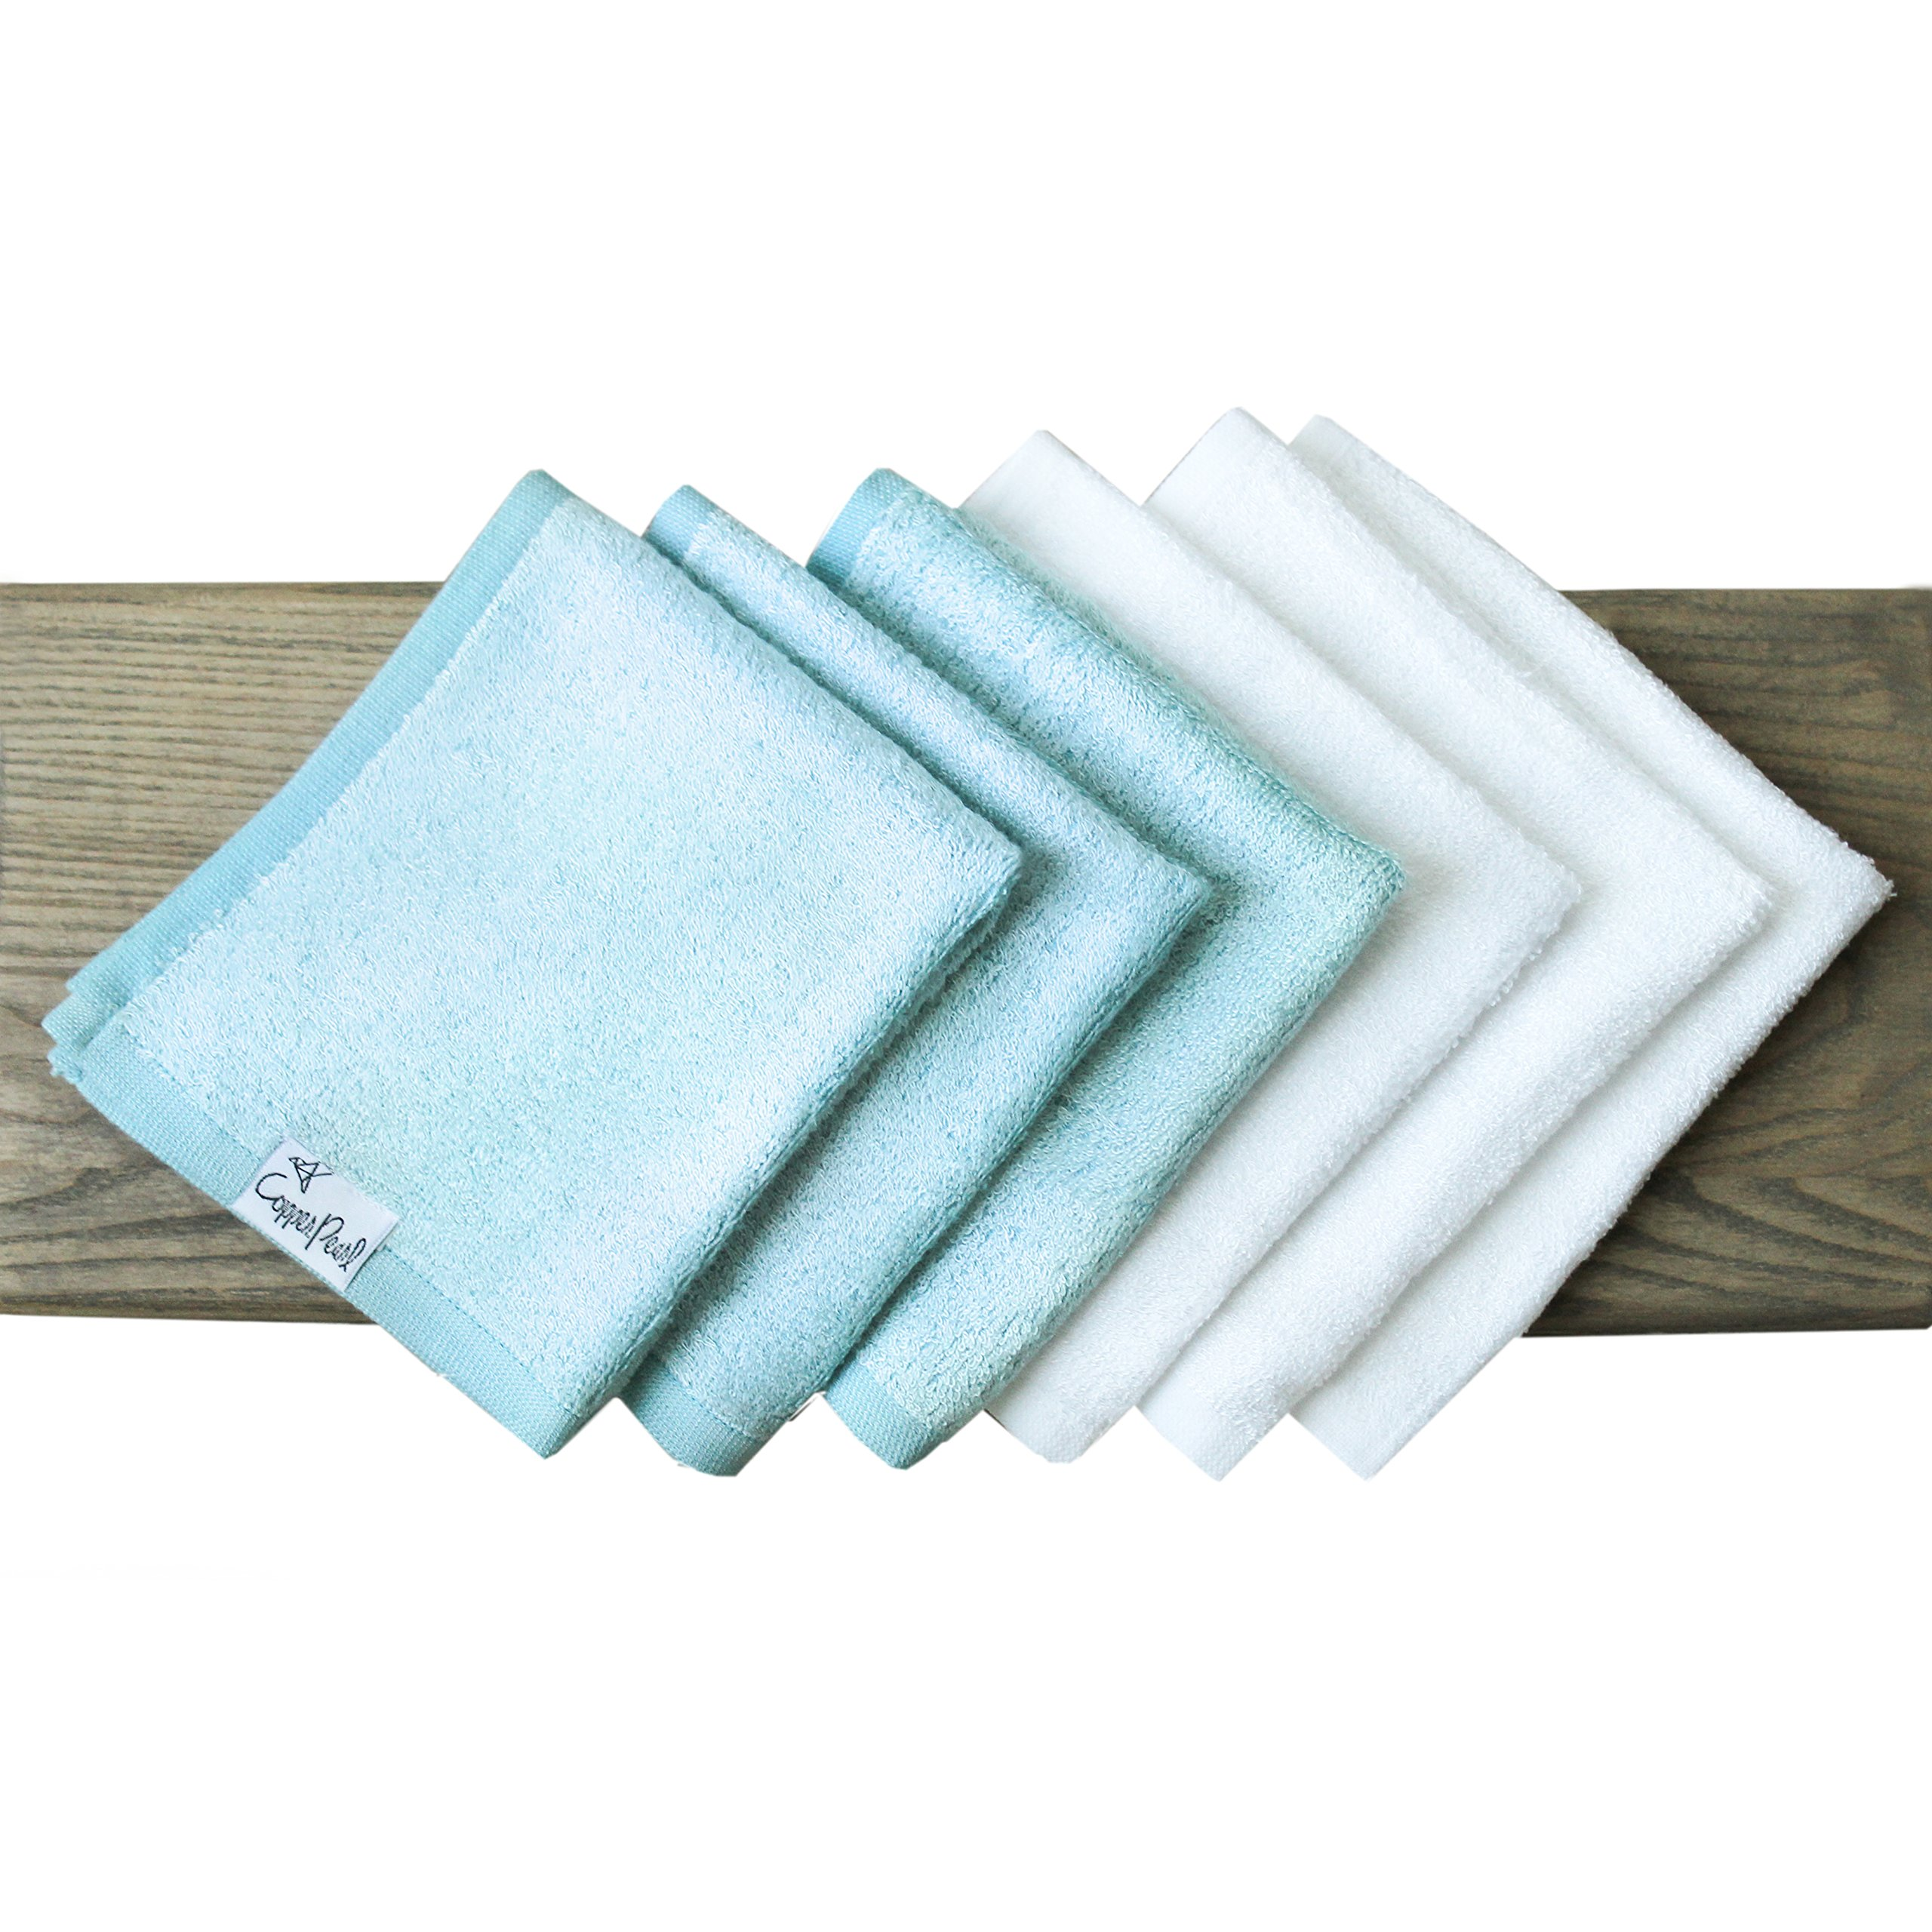 6 Baby Bath Washcloths Premium Large Soft White and Blue 11 x 11 inch Rayon from Bamboo Fibers Towels by Copper Pearl